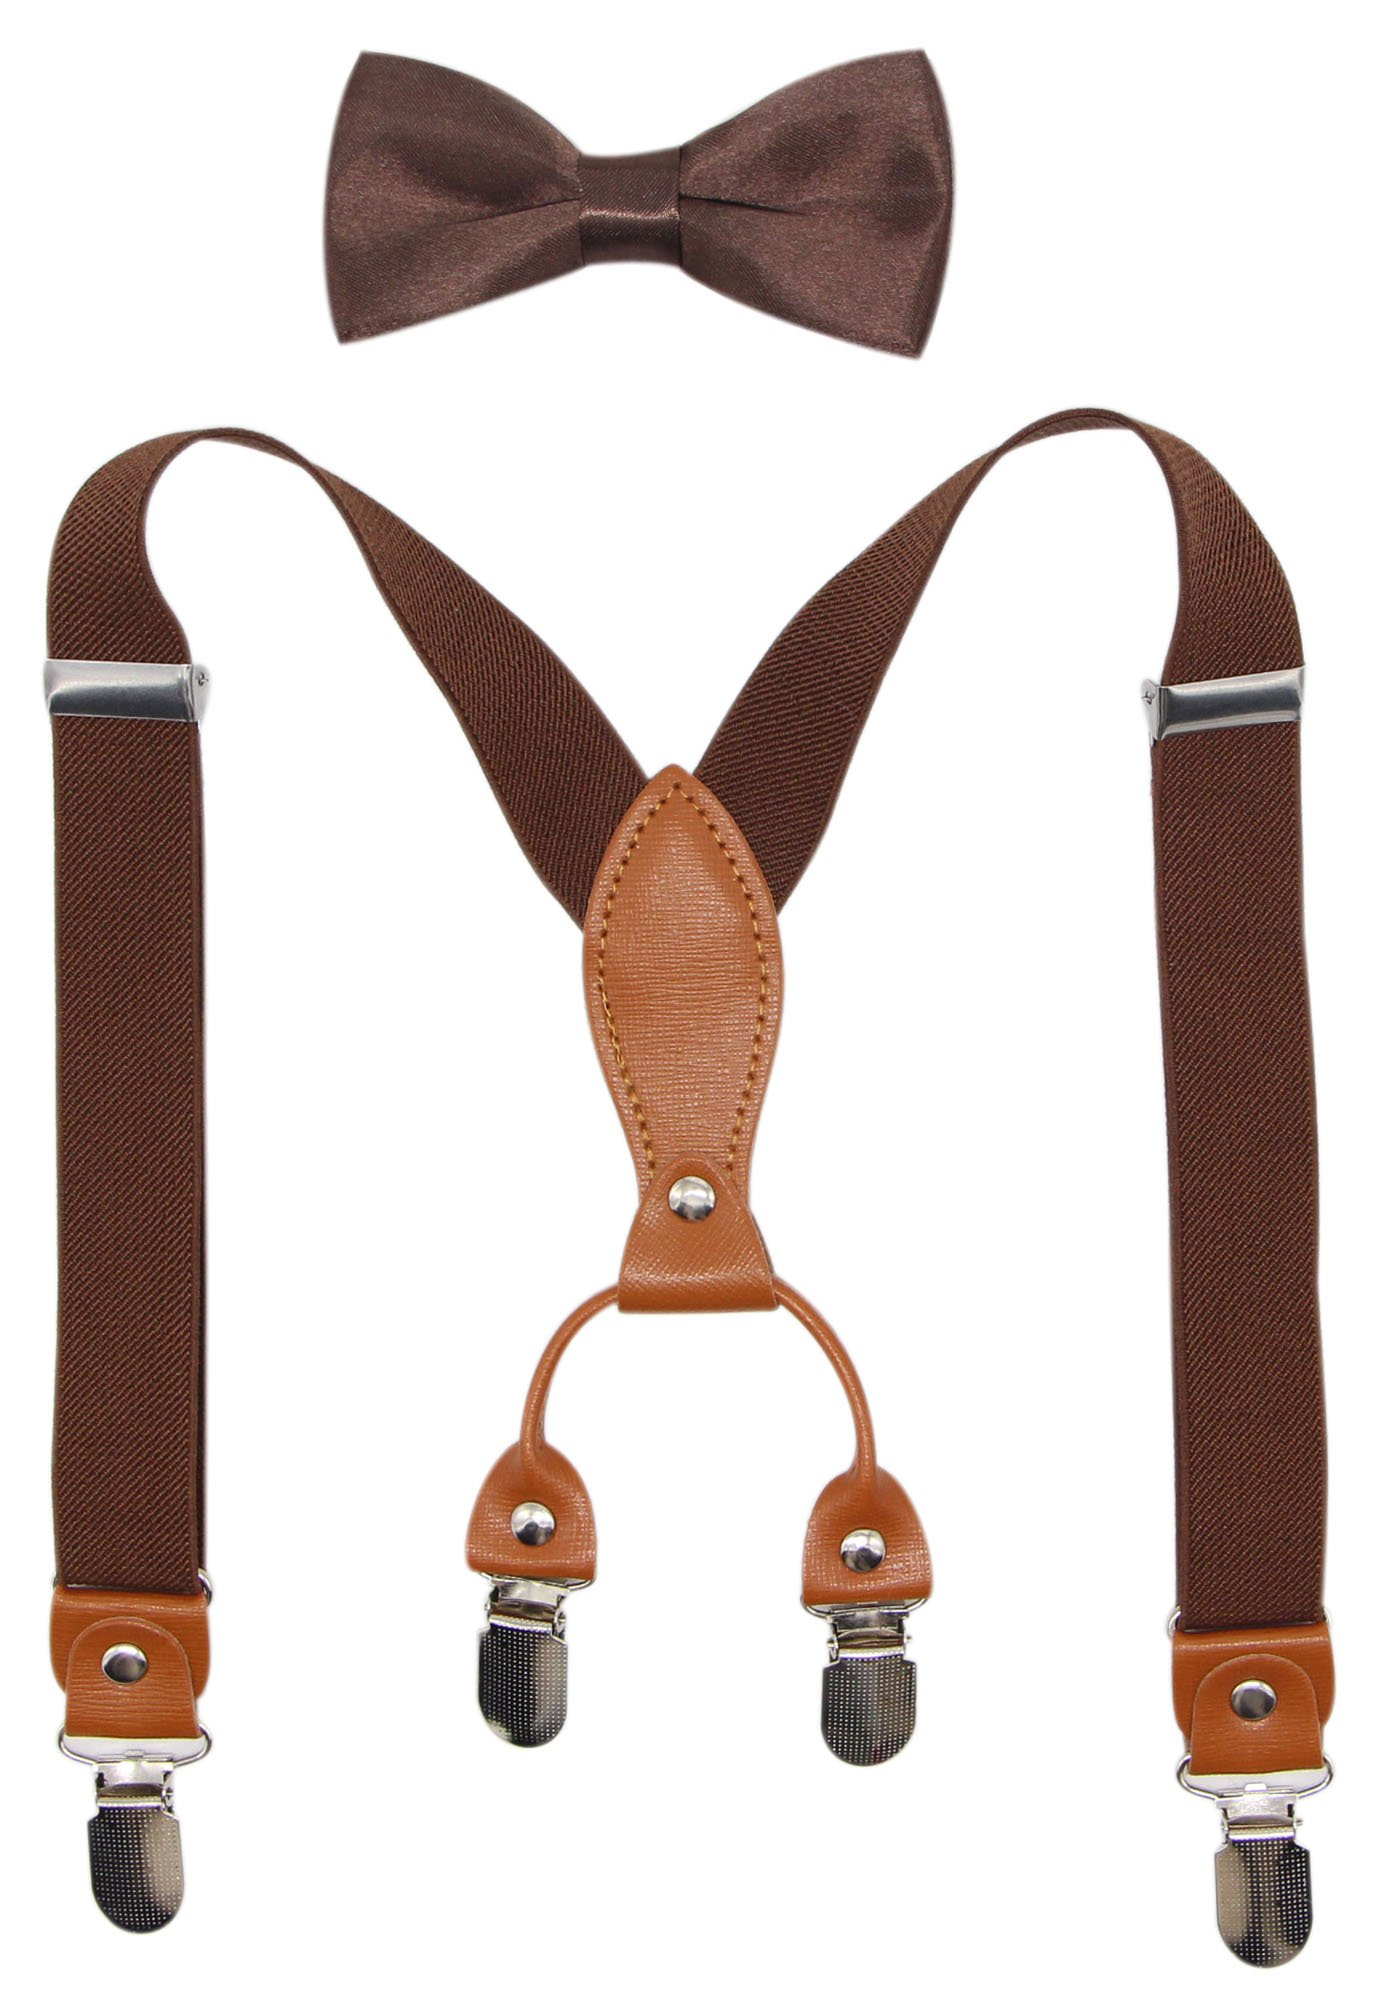 Suspenders & Bowtie Set for Kids and Baby - Adjustable Elastic X-Band Strong Clips Braces (Coffee)